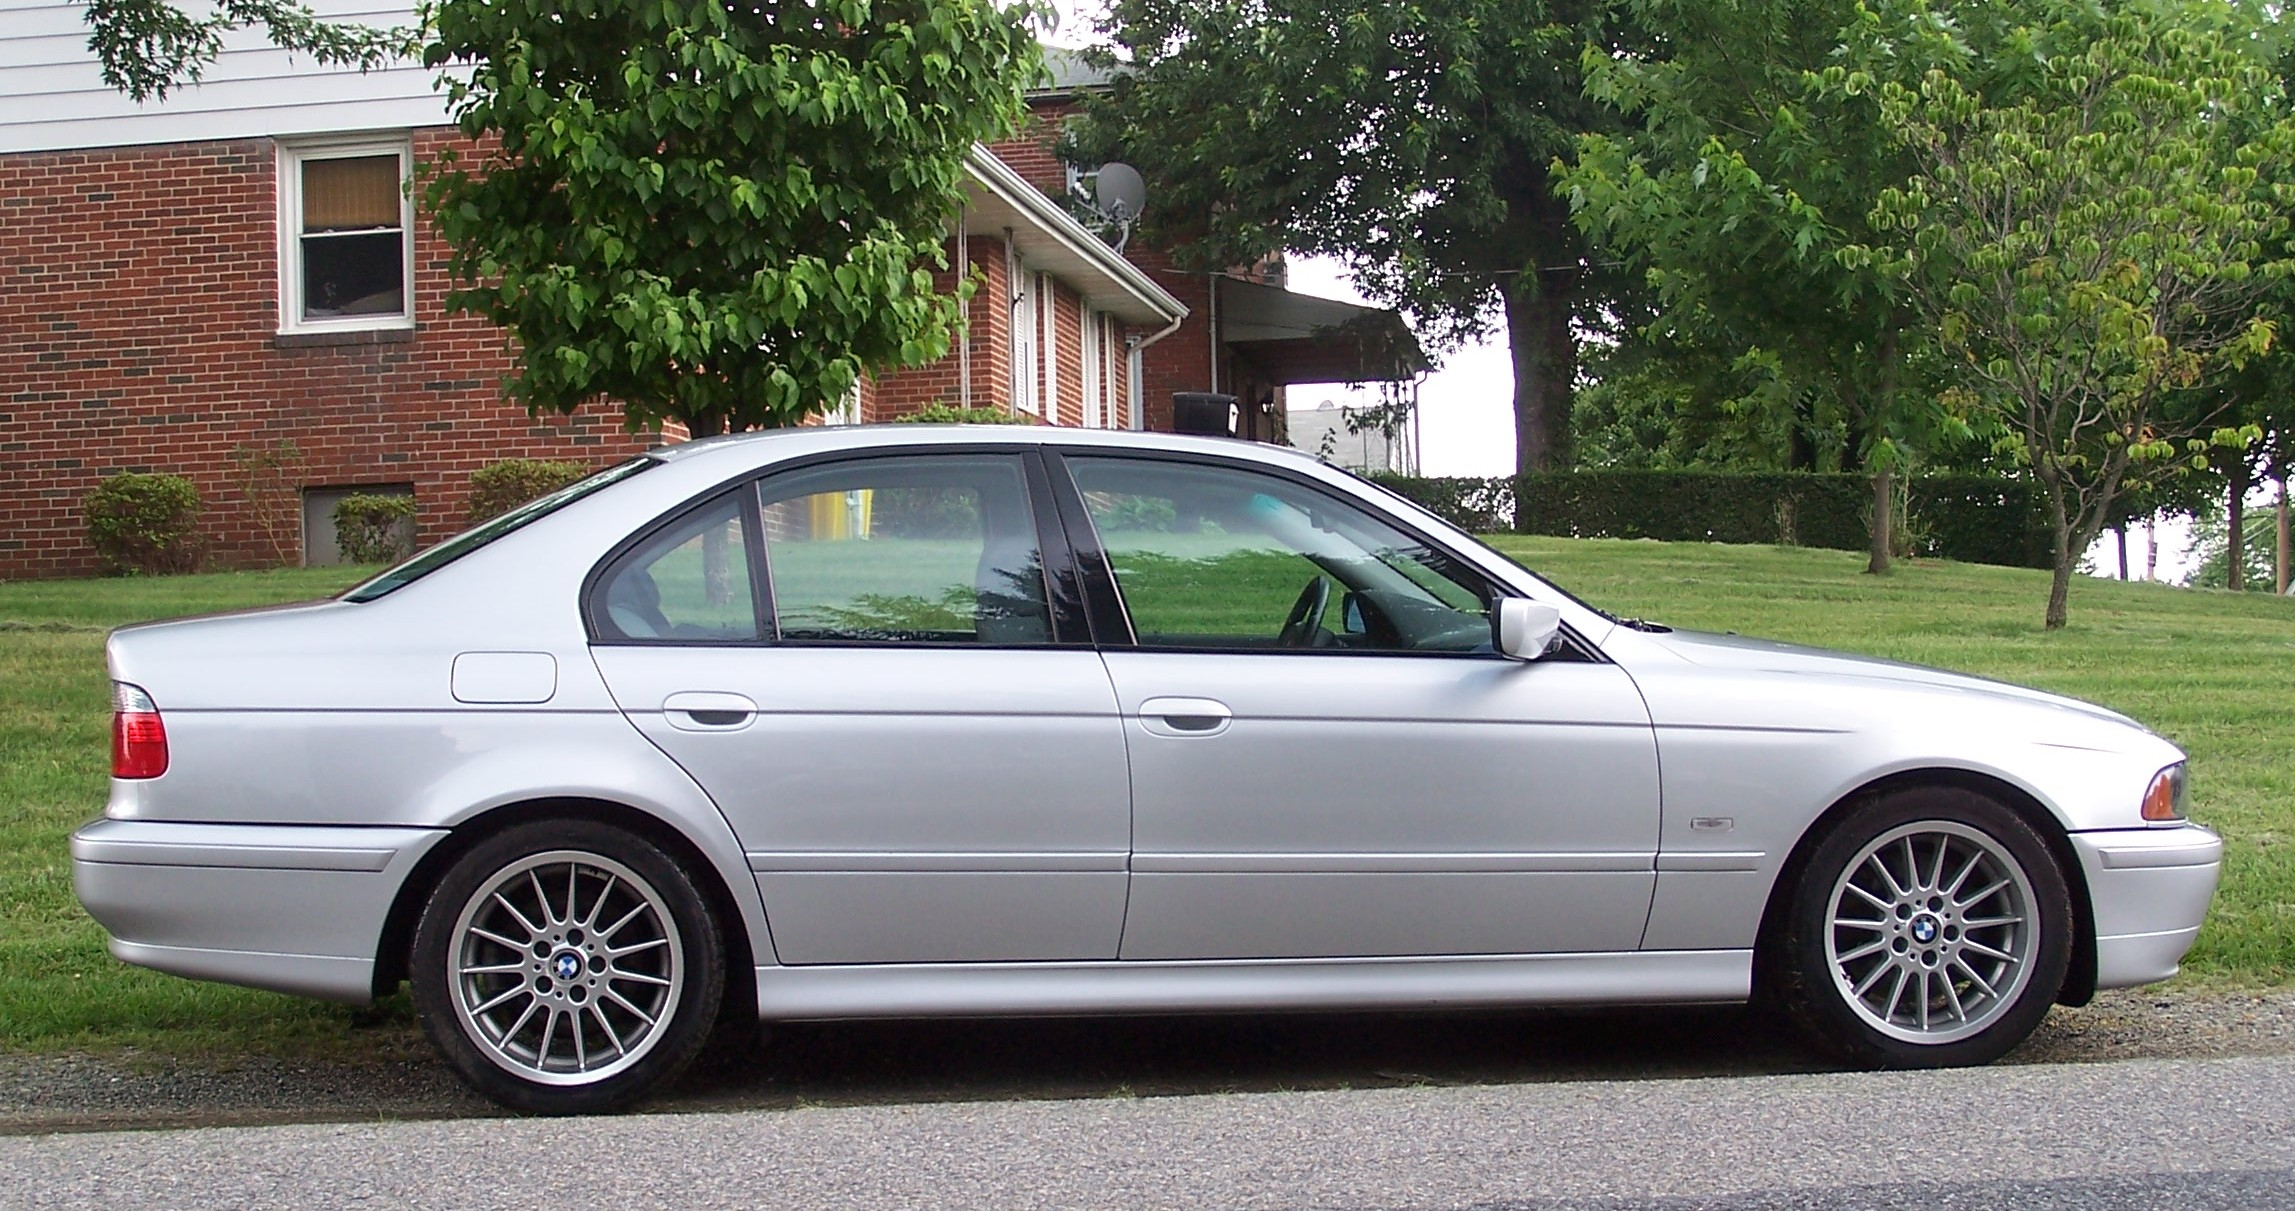 Bmw 540i 2007 Review Amazing Pictures And Images Look At The Car